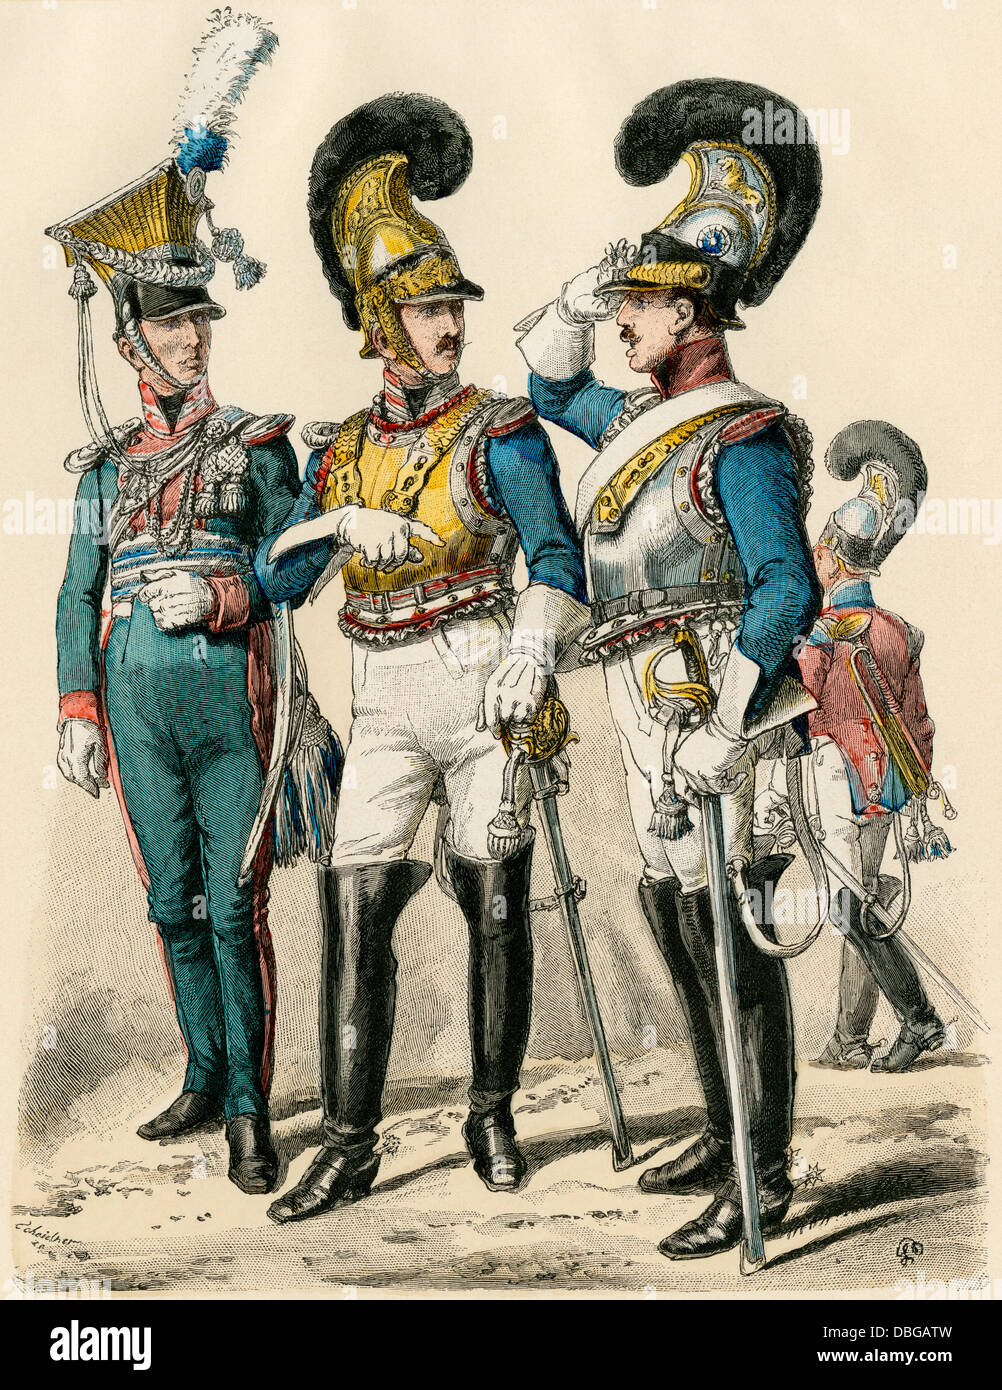 Bavarian military officers, early 1800s: lancer, bodyguard, and corps officer (left-right). Hand-colored print - Stock Image